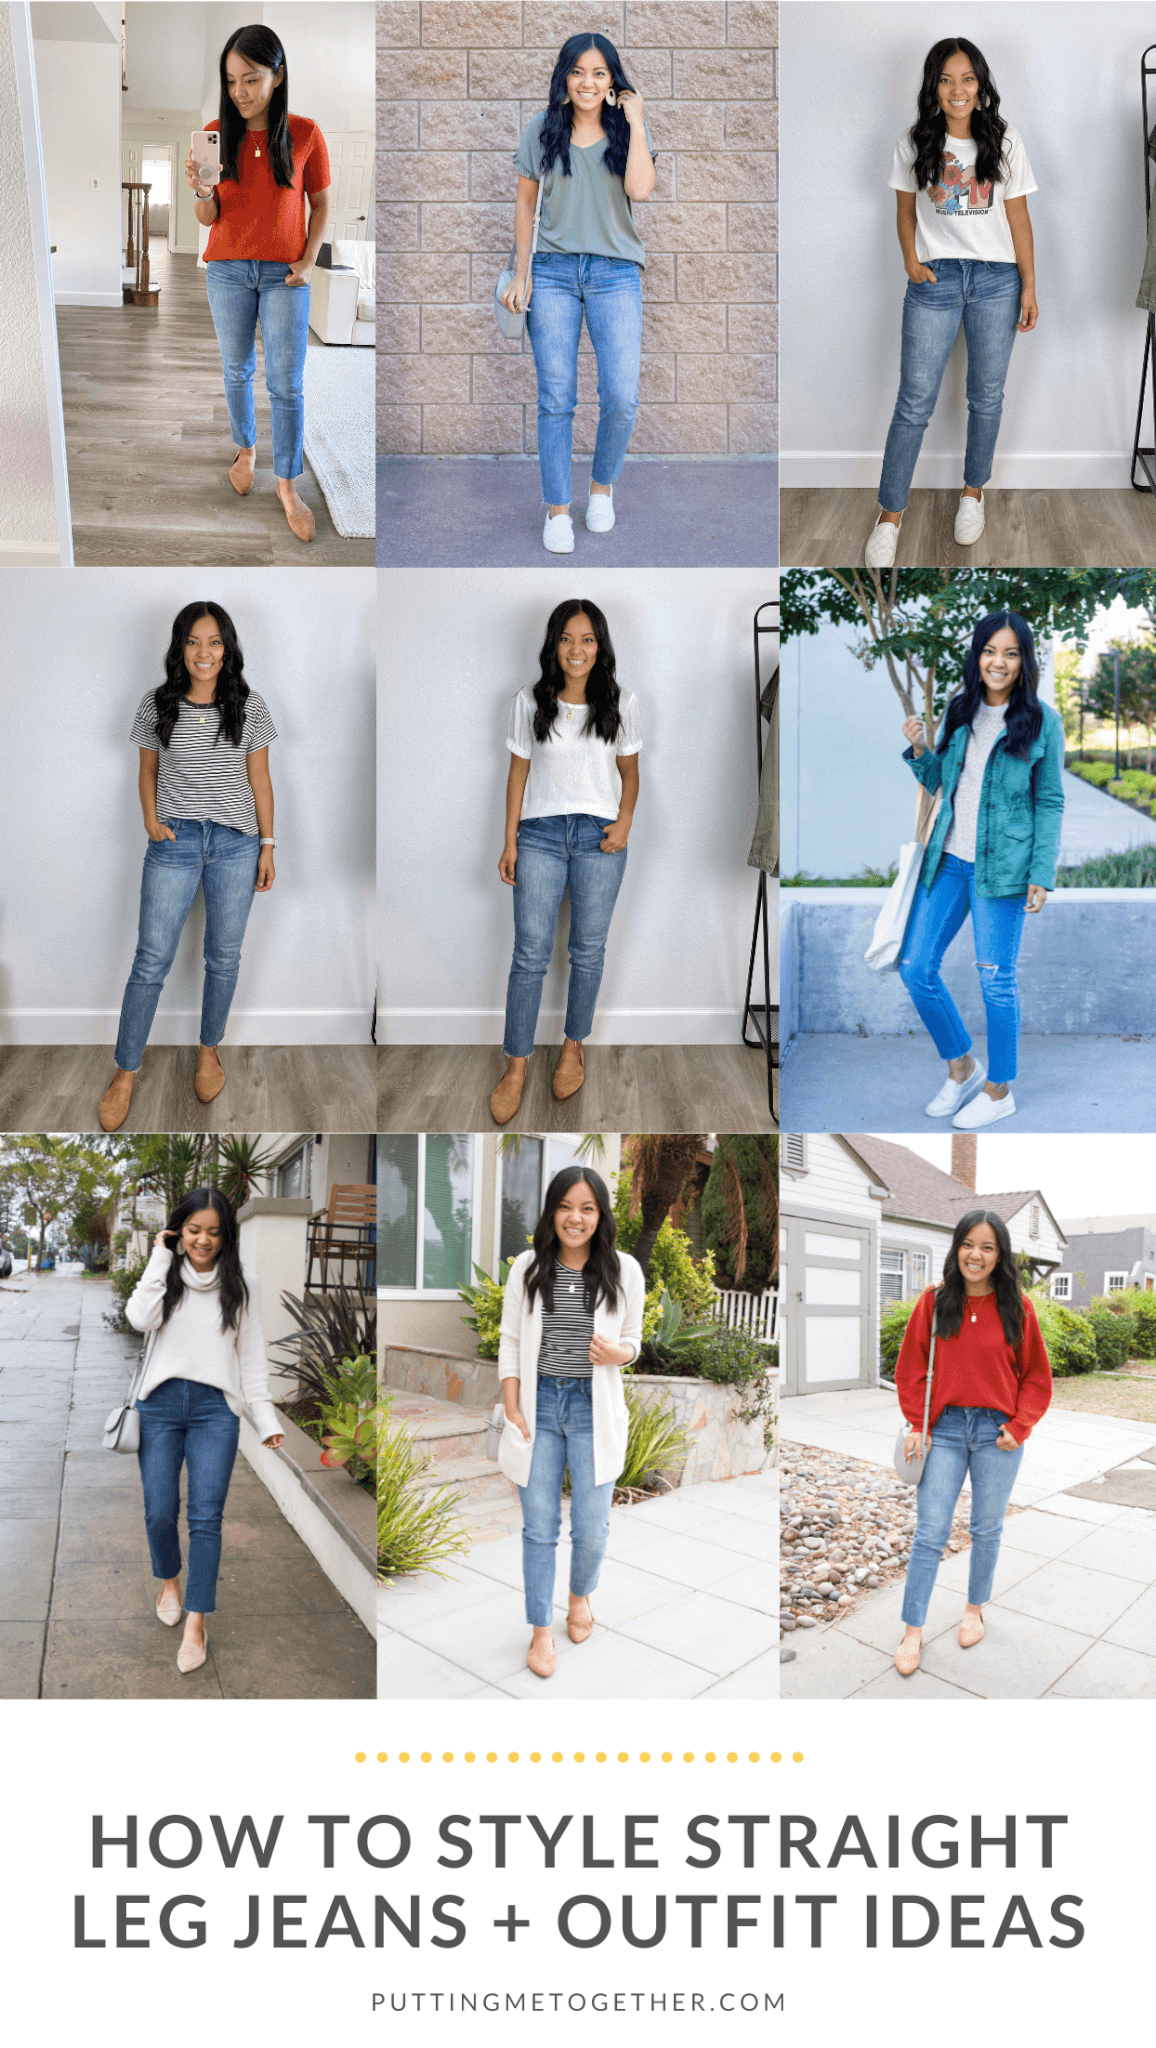 How to Style Straight Leg Jeans